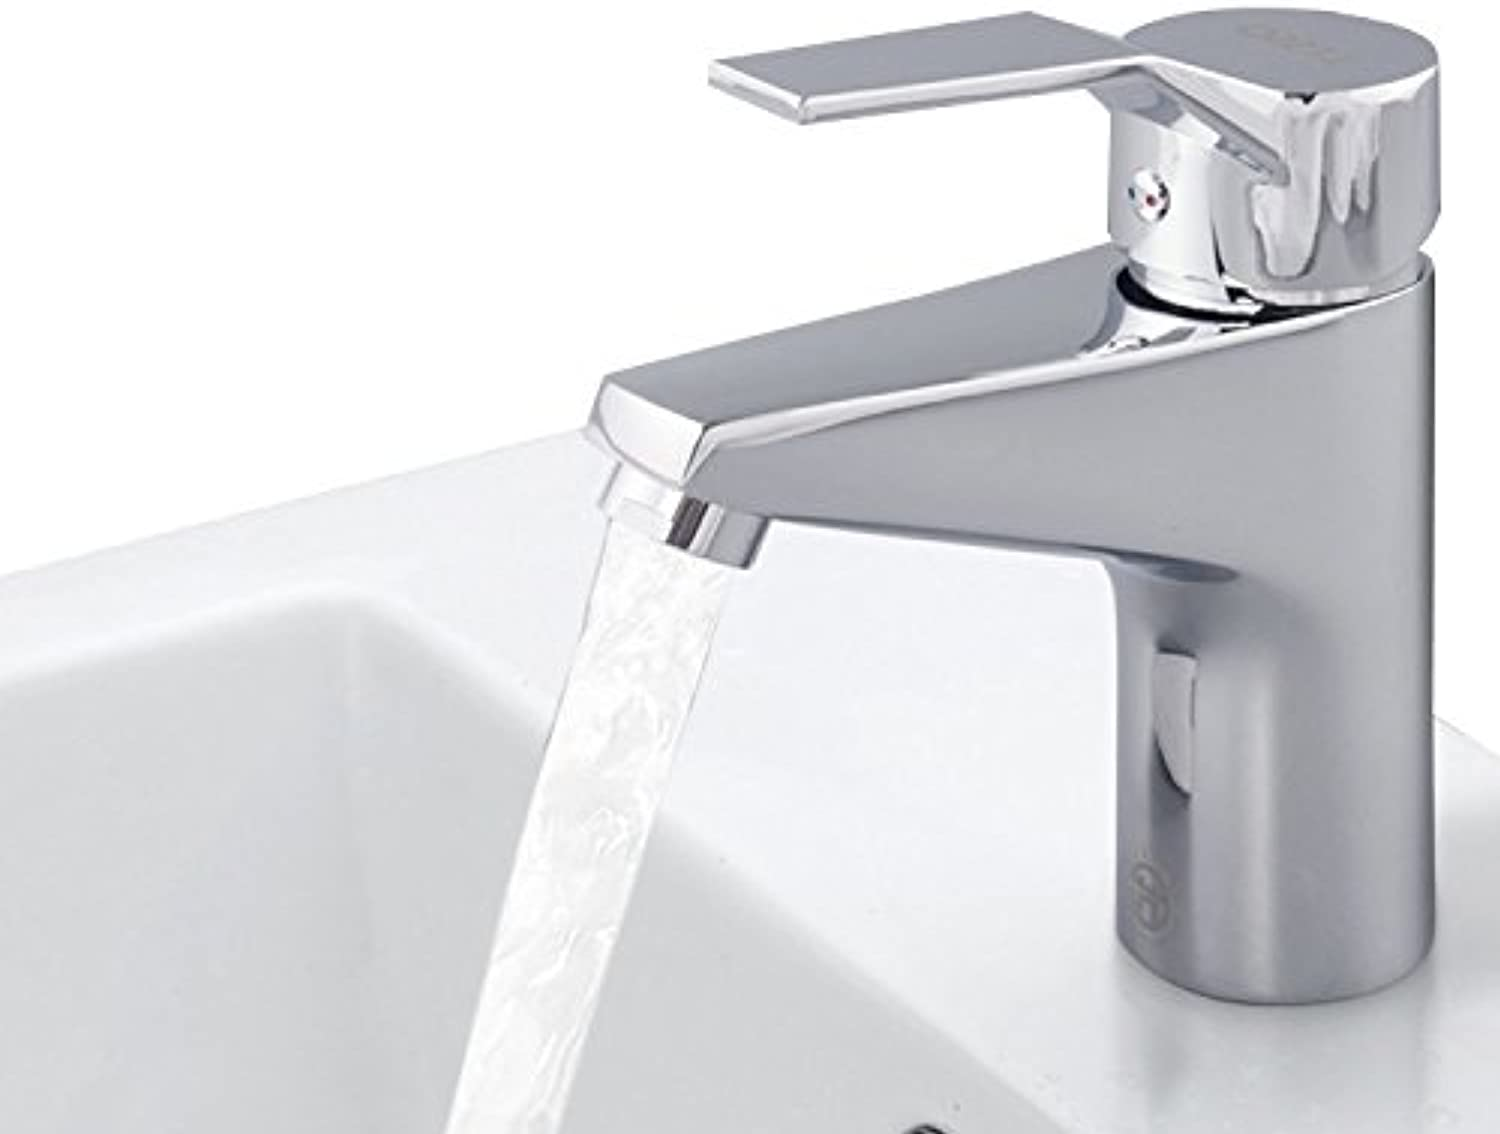 Hlluya Professional Sink Mixer Tap Kitchen Faucet The basins of hot and cold lever style brass single hole Single Handle Faucet